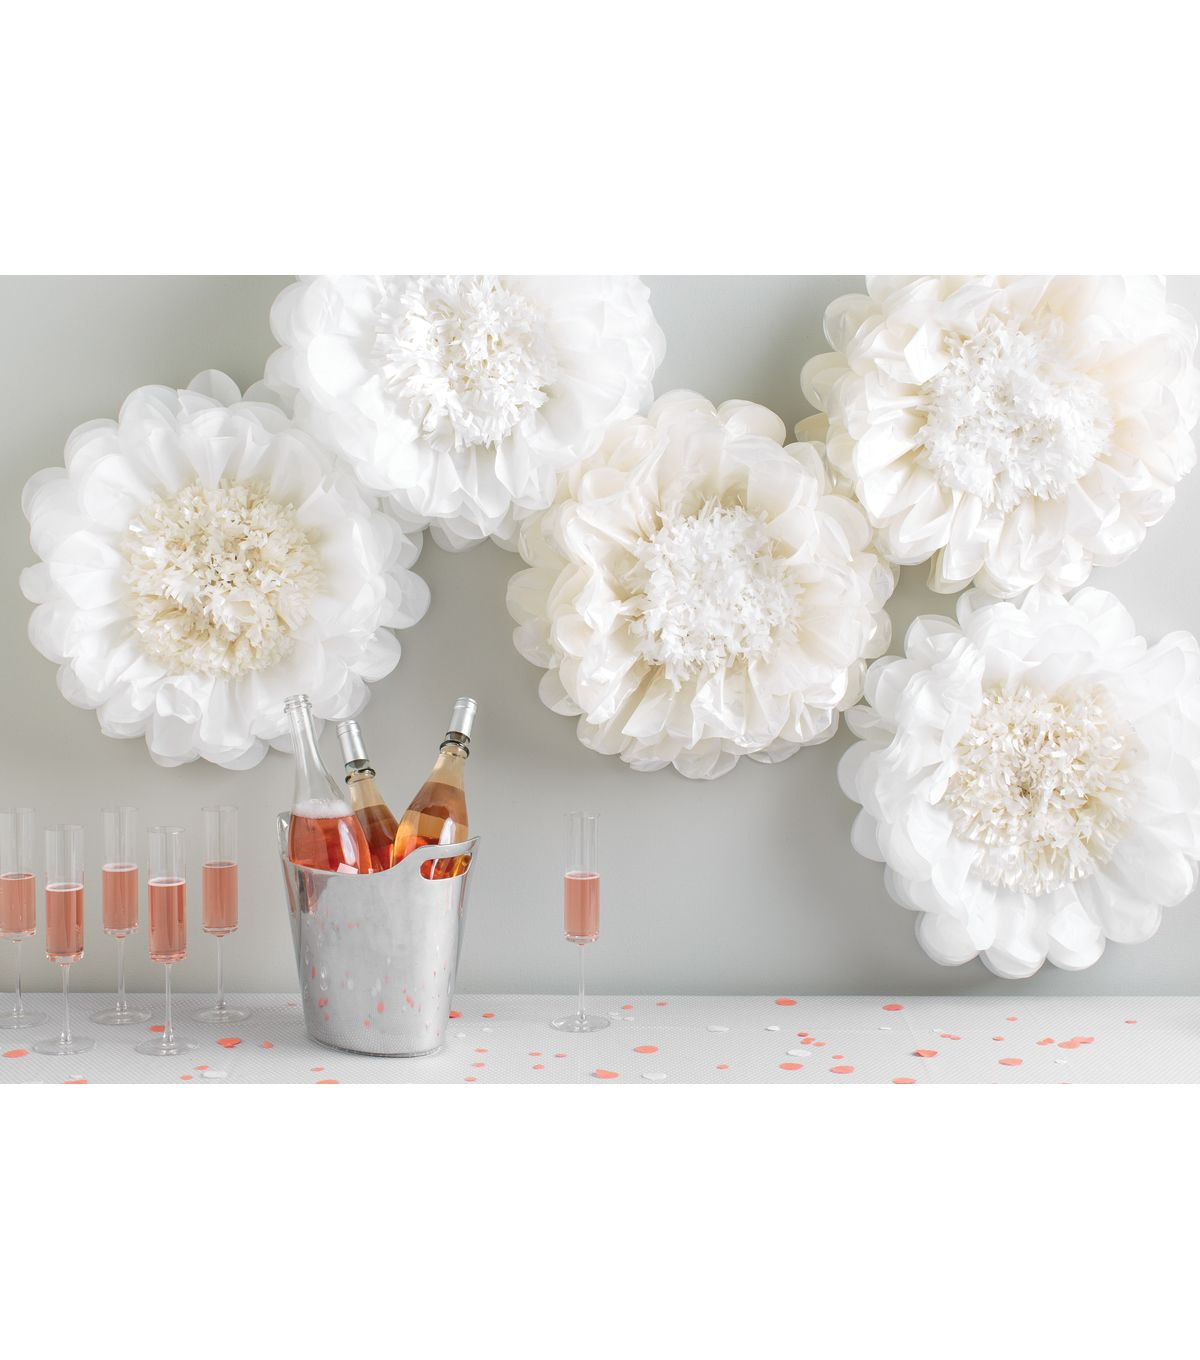 how to make tissue paper flowers martha stewart Tissue paper flowers:  there are a variety of great tissue paper tutorials online martha stewart offers a photo tutorial showing how to make the large tissue.